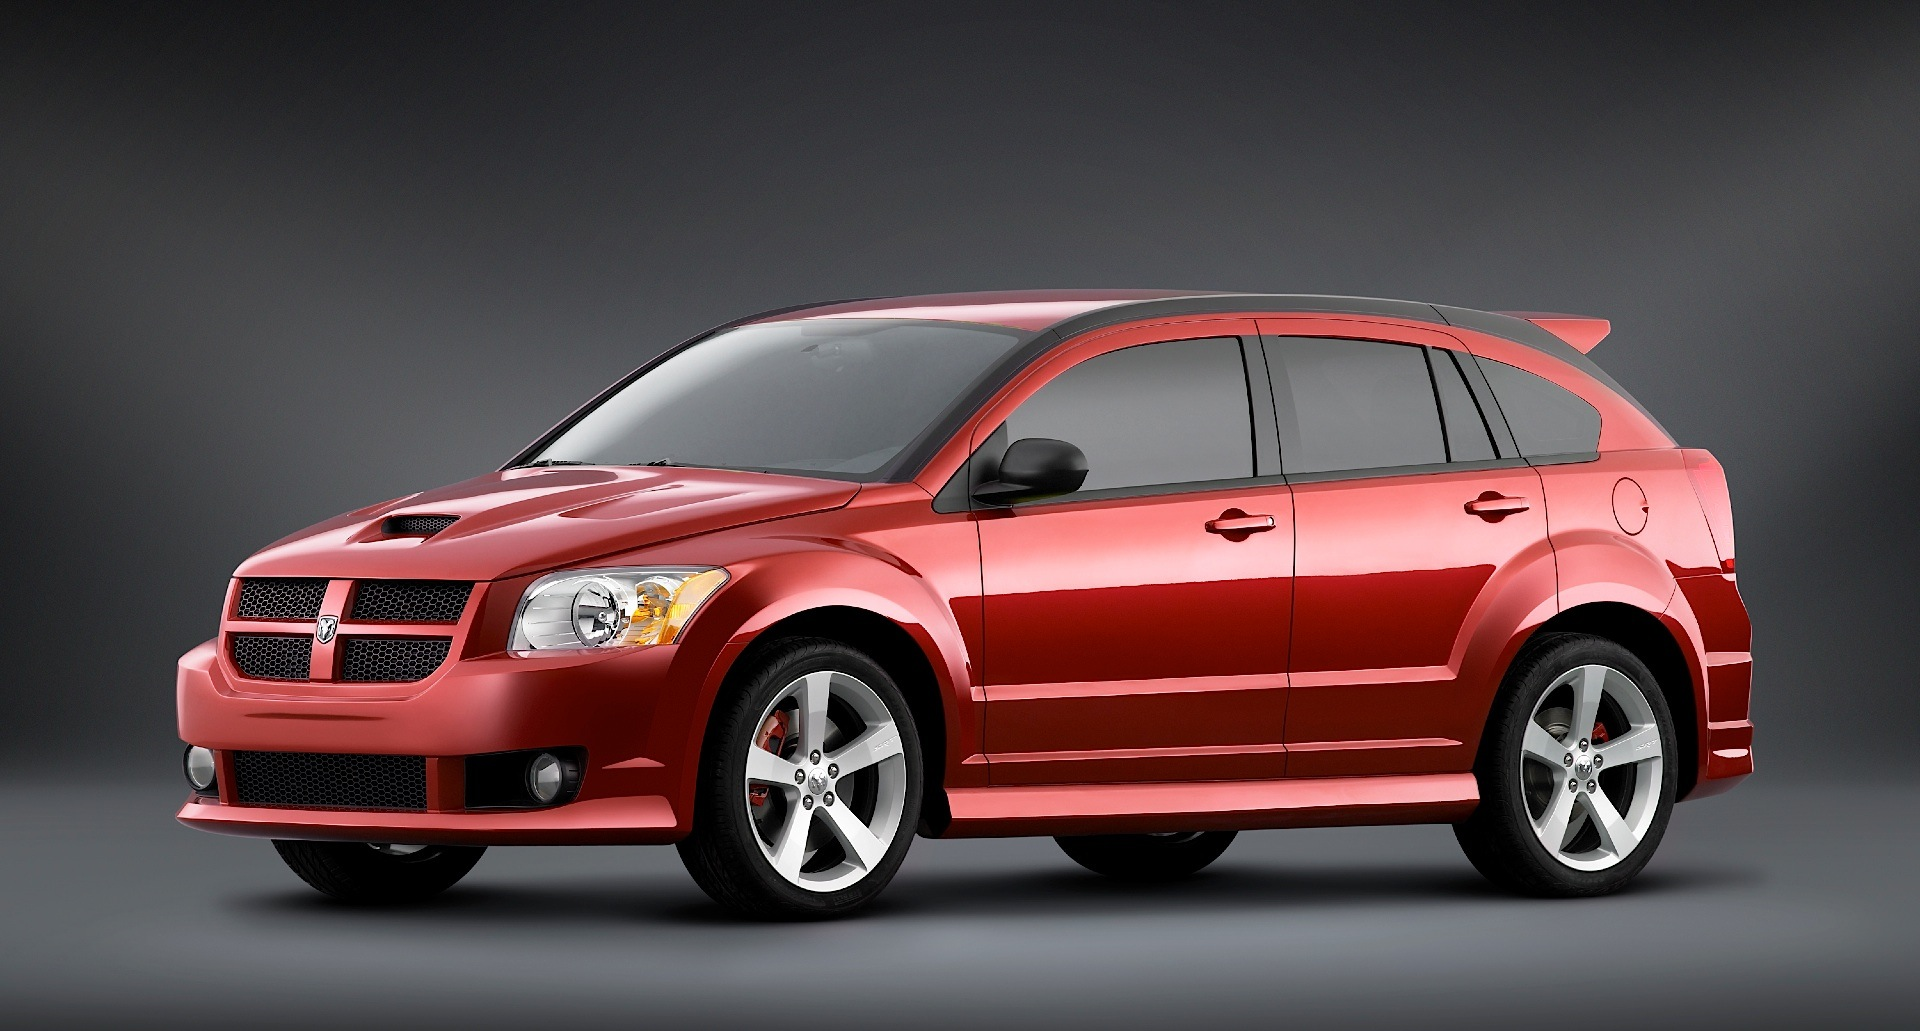 Dodge Caliber Srt4 Specs 2007 2008 2009 2010 2011 Autoevolution